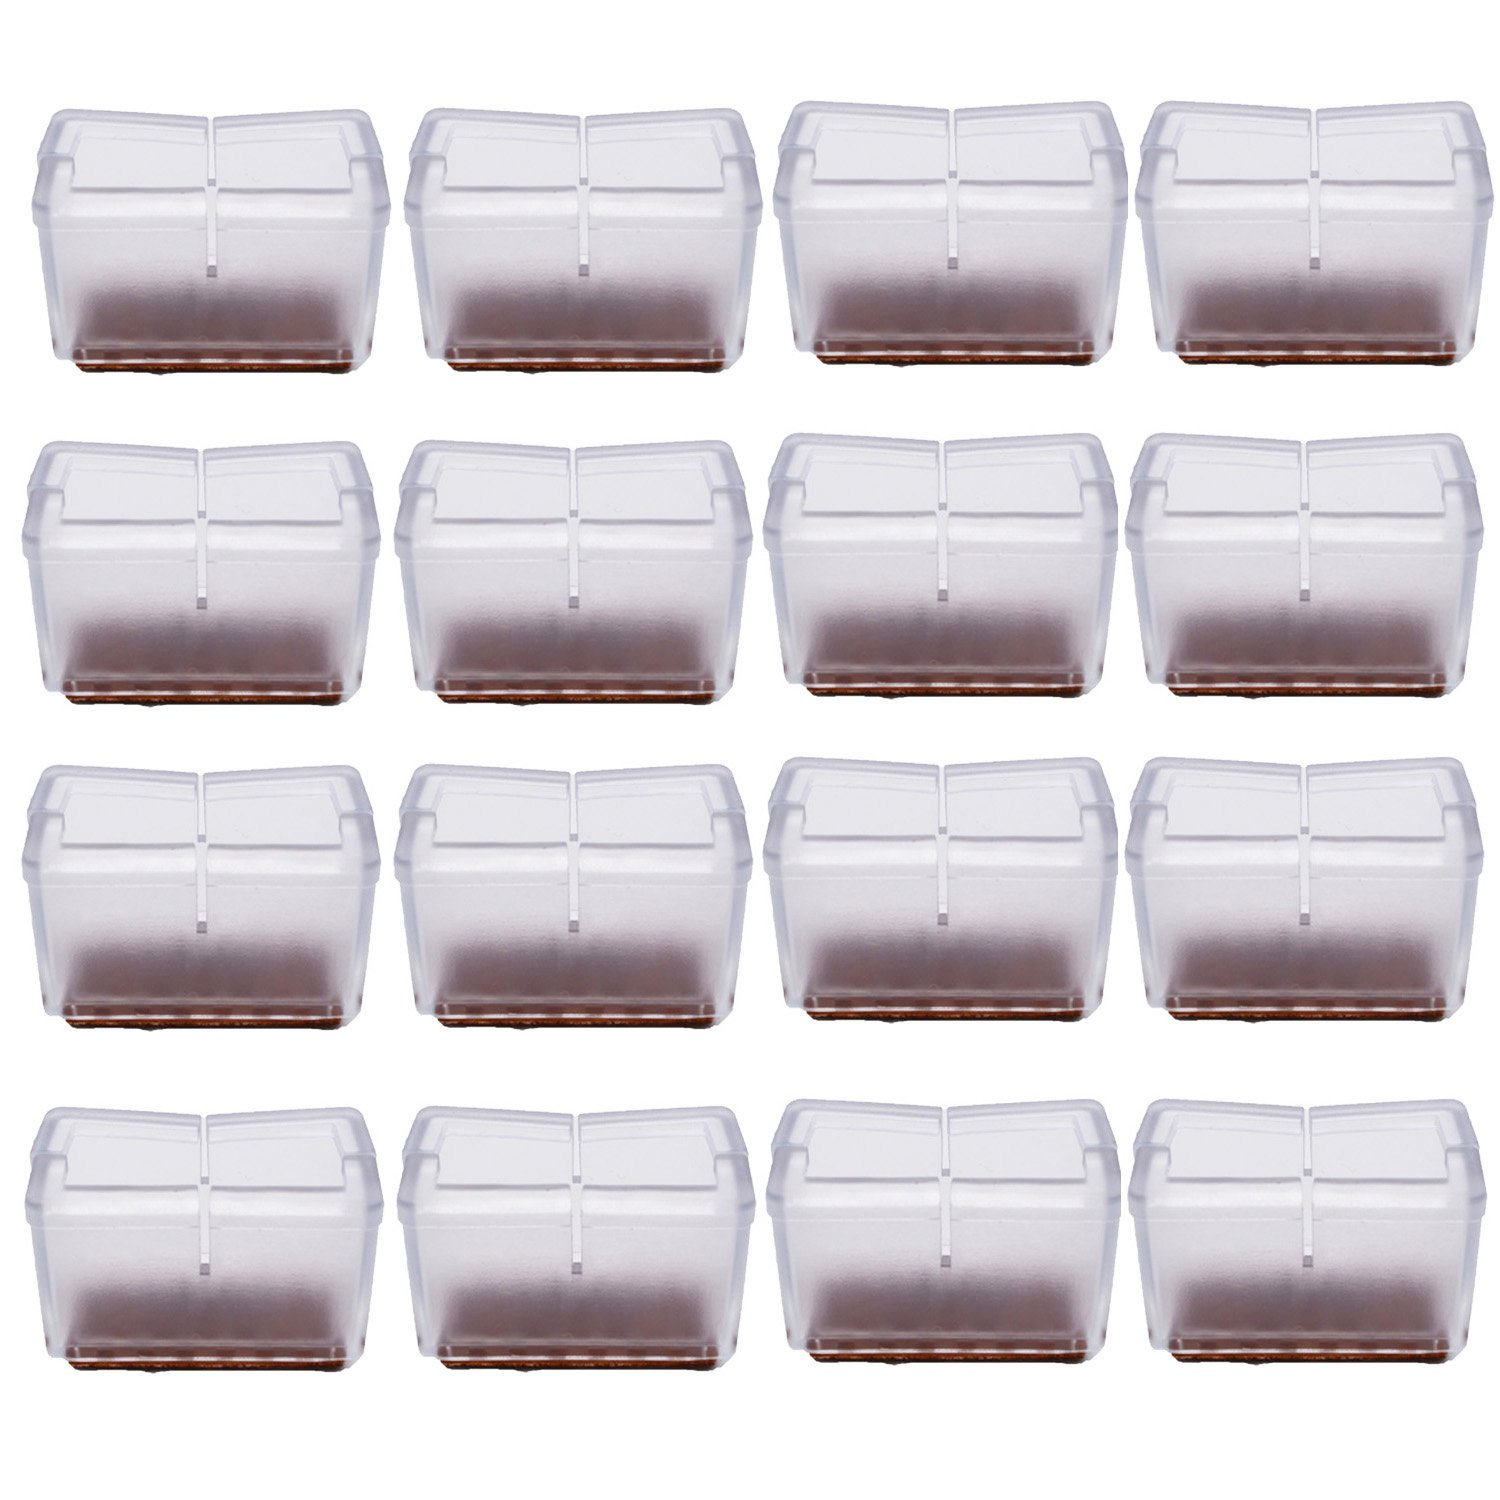 "Antrader 16pcs Silicon Rectangle Furniture Pads Floor Protector Sofa Non-Slip Chair Feet Pad Table Leg Cap with Felt Pads Length 1-9/16"" to 1-13/16"" (3.9-4.8cm),Width 1"" to 1-3/16"" (2.4-3.1cm) Clear"